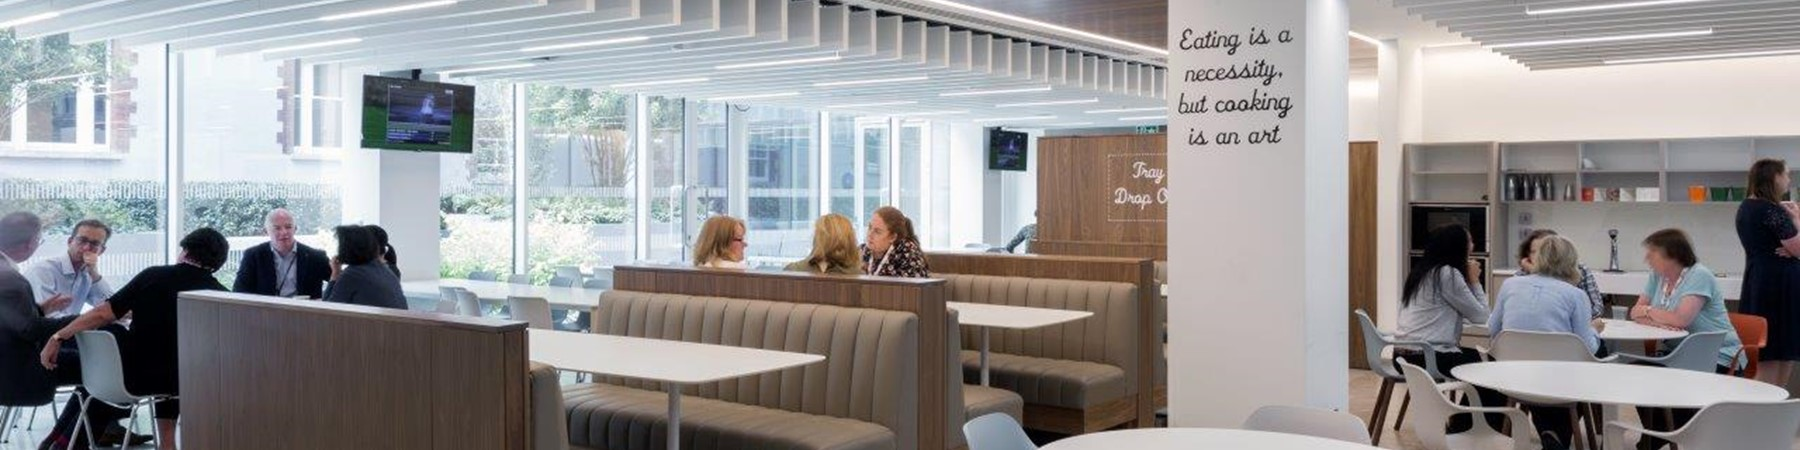 Acoustic Control In Open Plan Office Environments